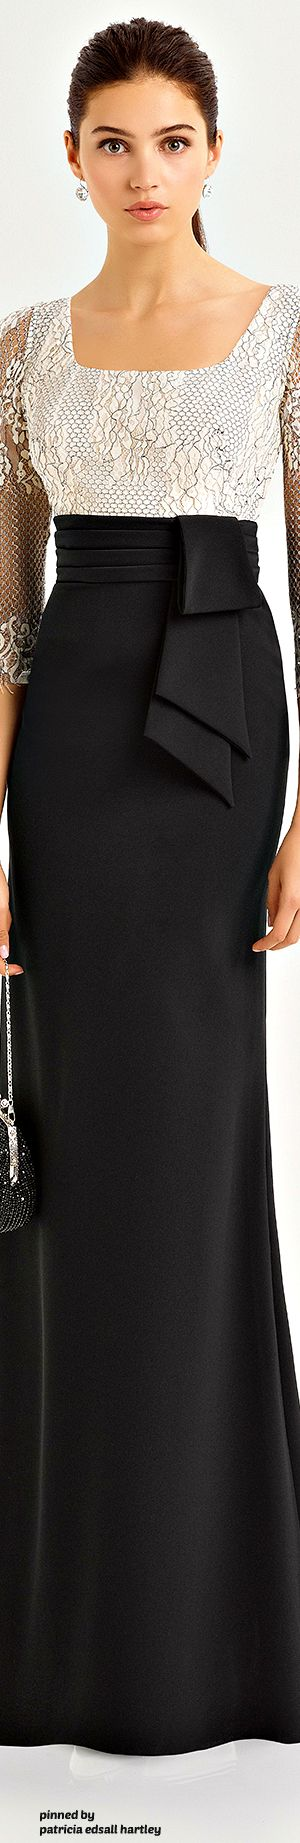 Aire Barcelona - 2017 - In Black Jersey Skirt w. Chain-Like Top 2/3 Length Sleeves.